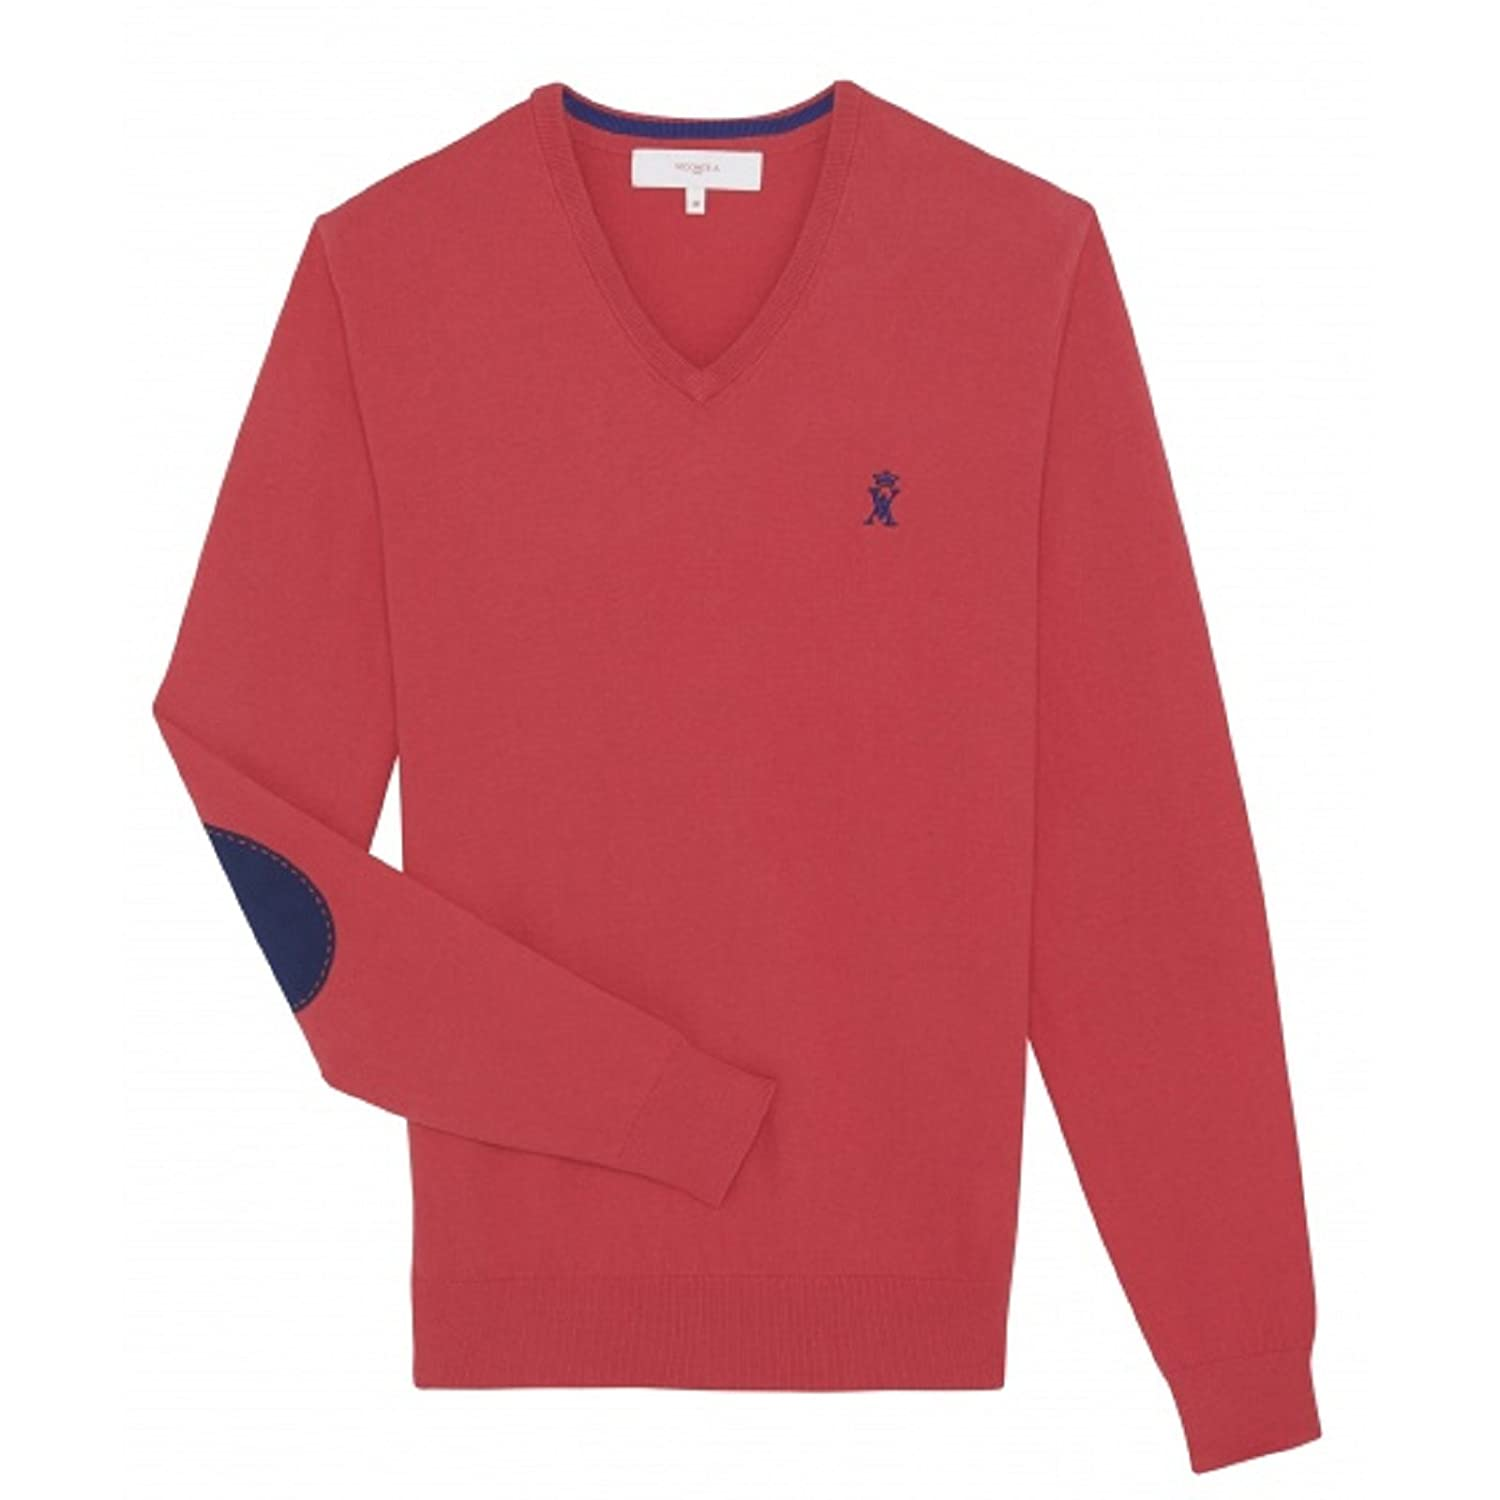 Vicomte A. Men's Jumper